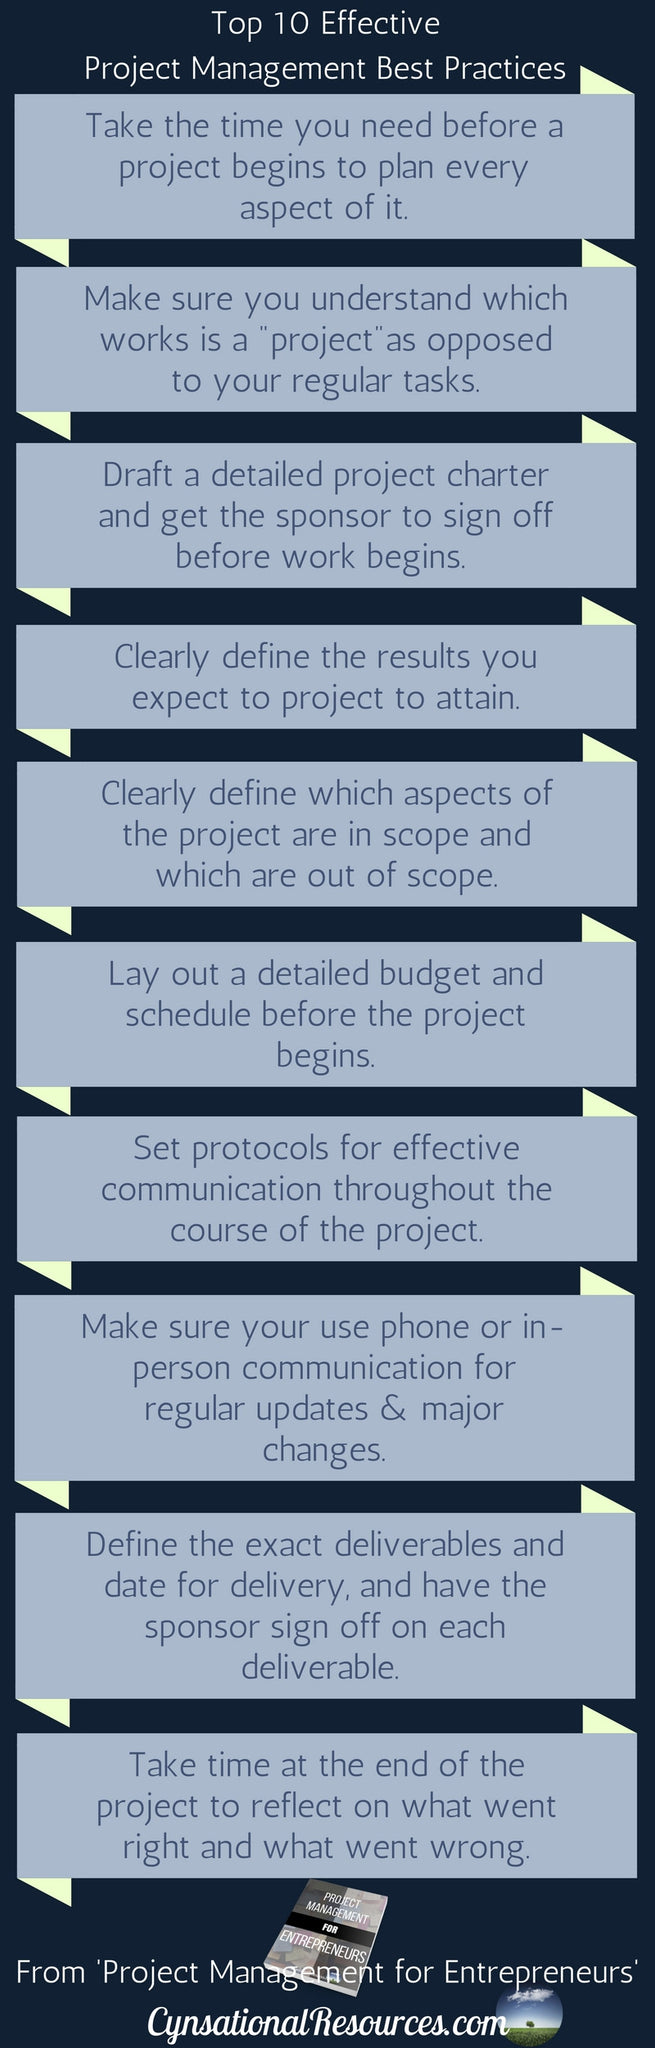 top 10 best practices for project management